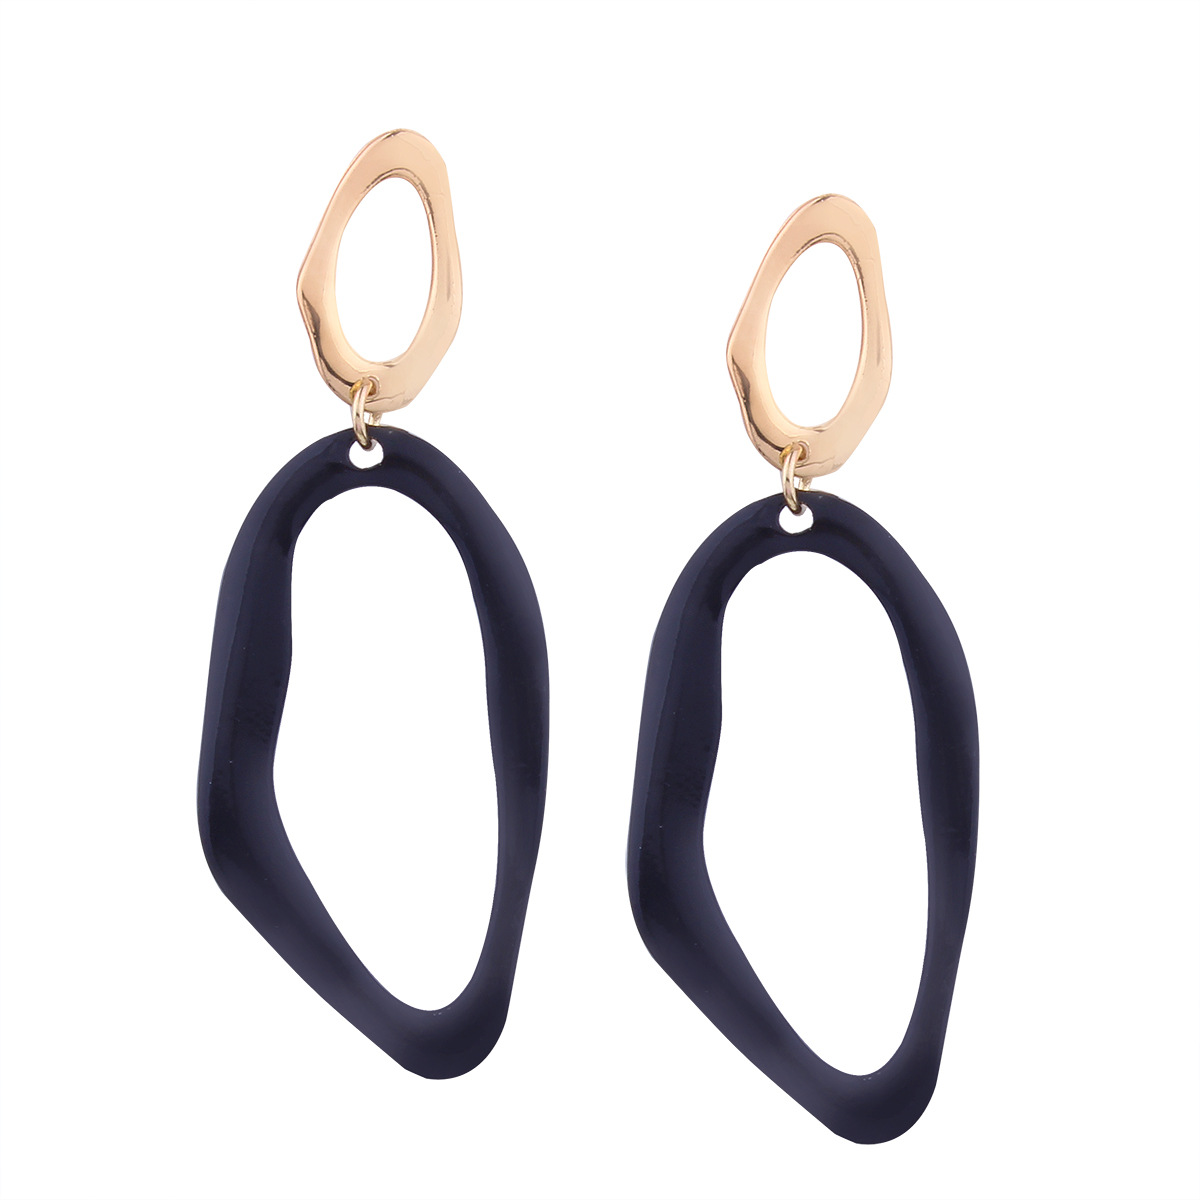 Unice Geometric Earrings For Women Korean Style Brincos Earings Earring Pendientes Earin ...